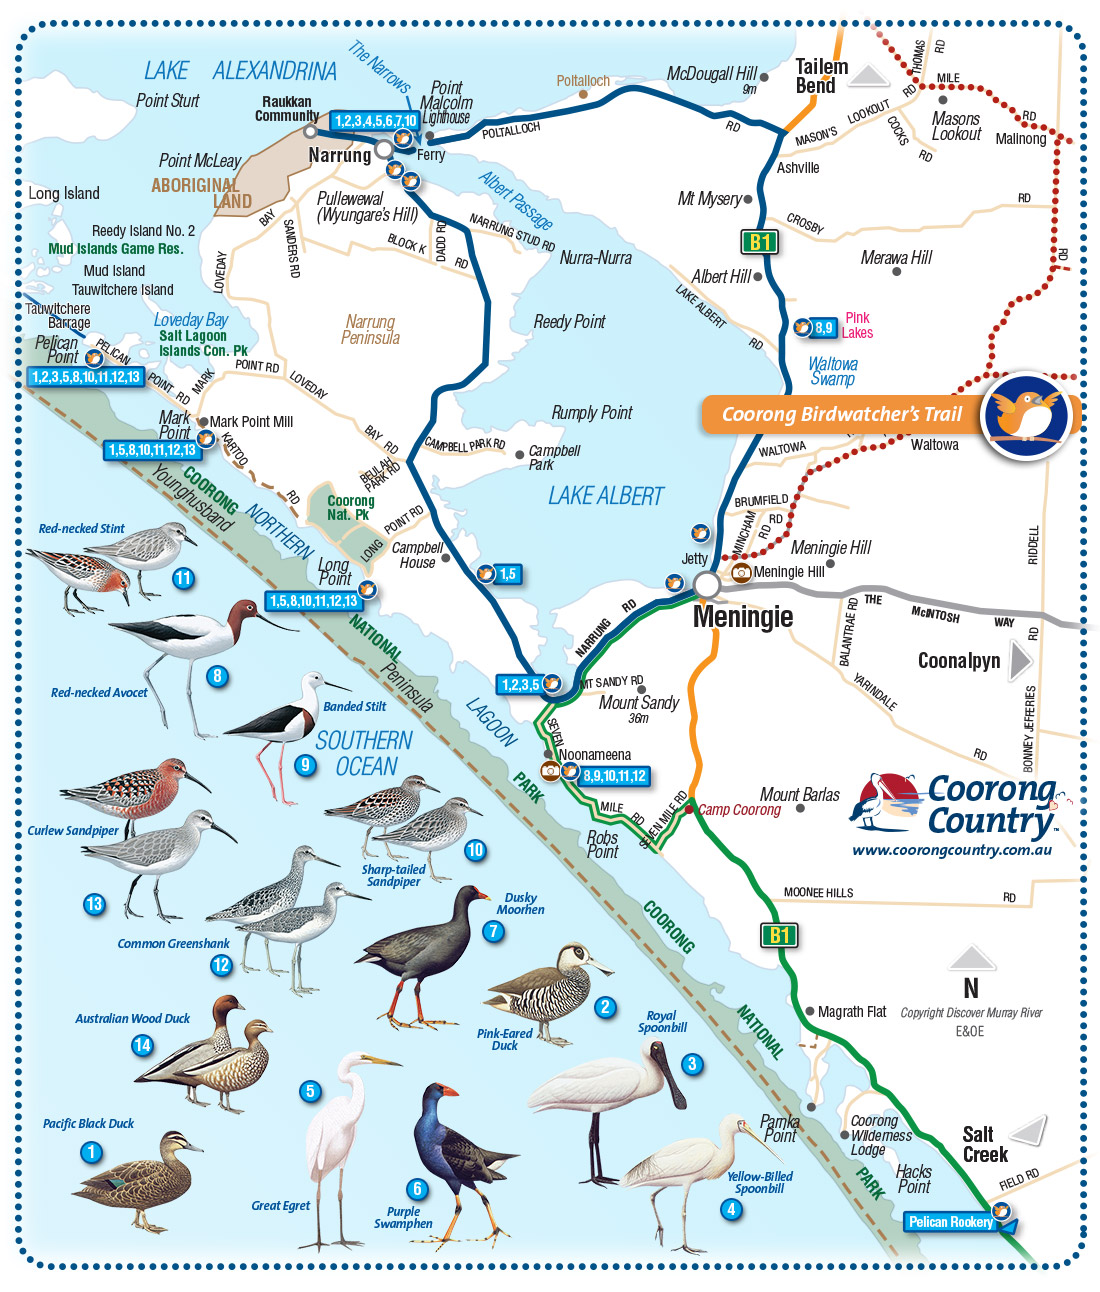 Coorong Country and Meningie Maps South Australia